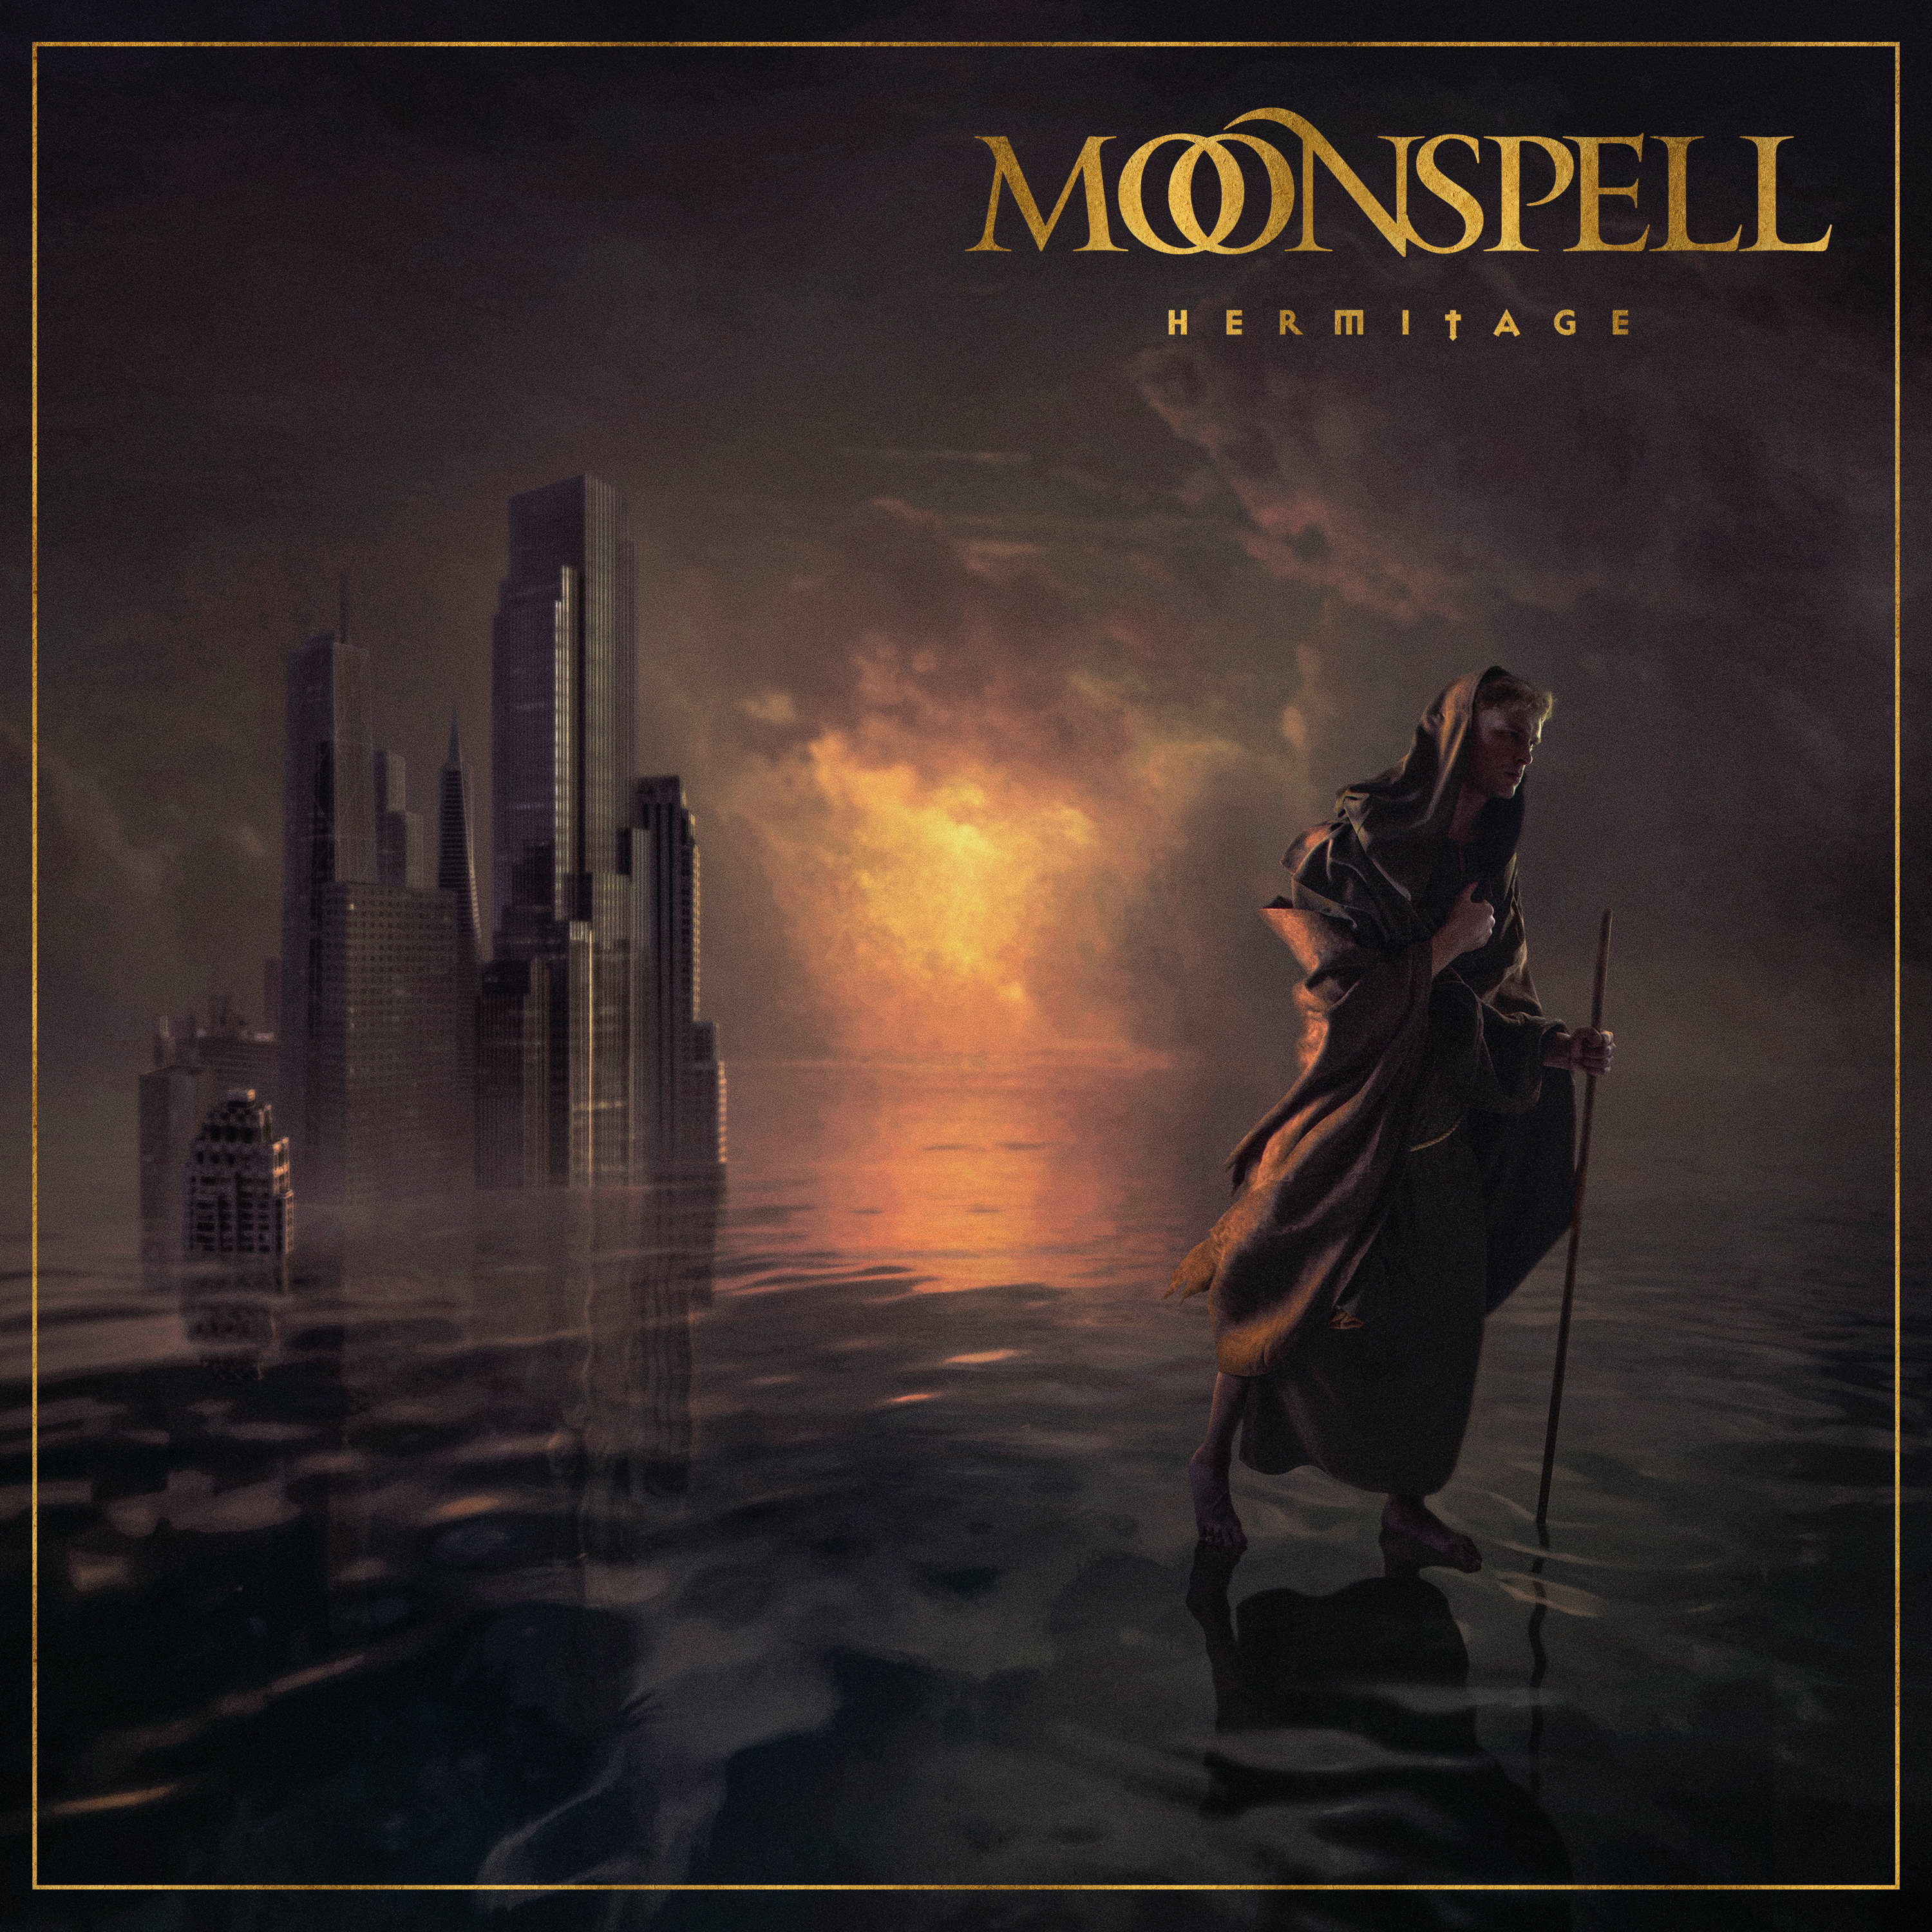 Moonspell Hermitage Album Cover